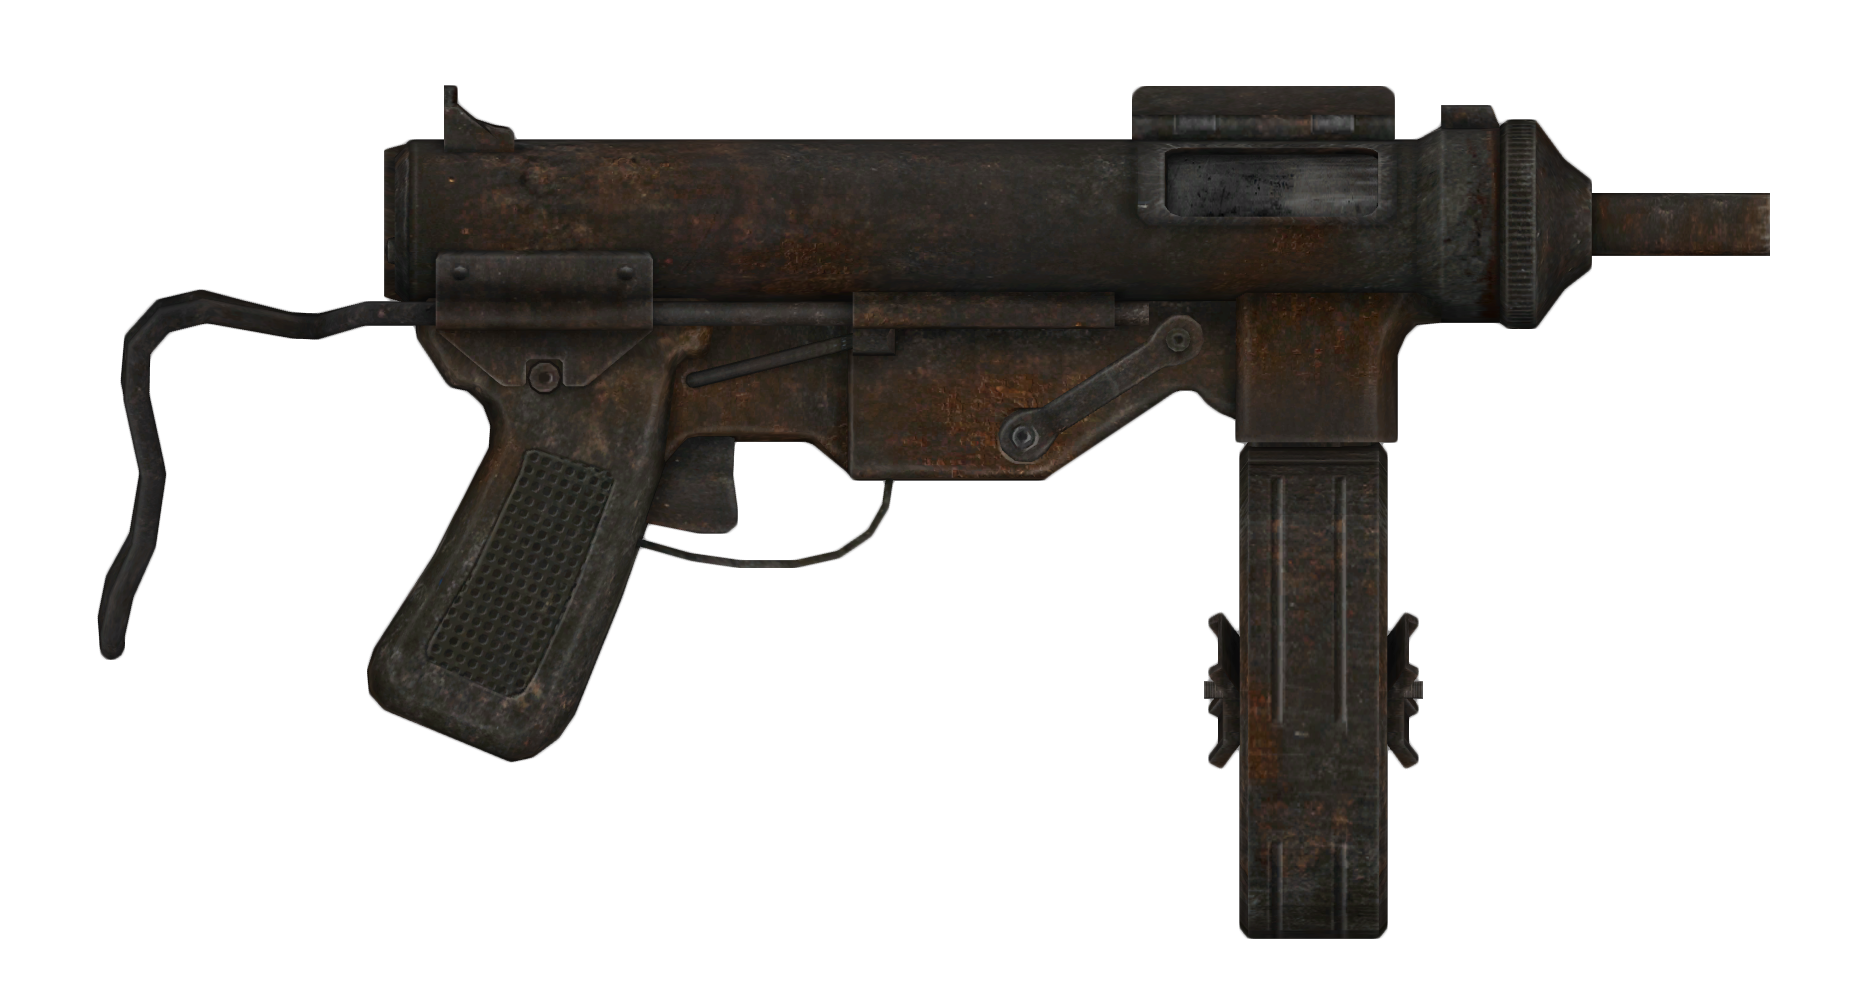 9mm SMG with drum modification